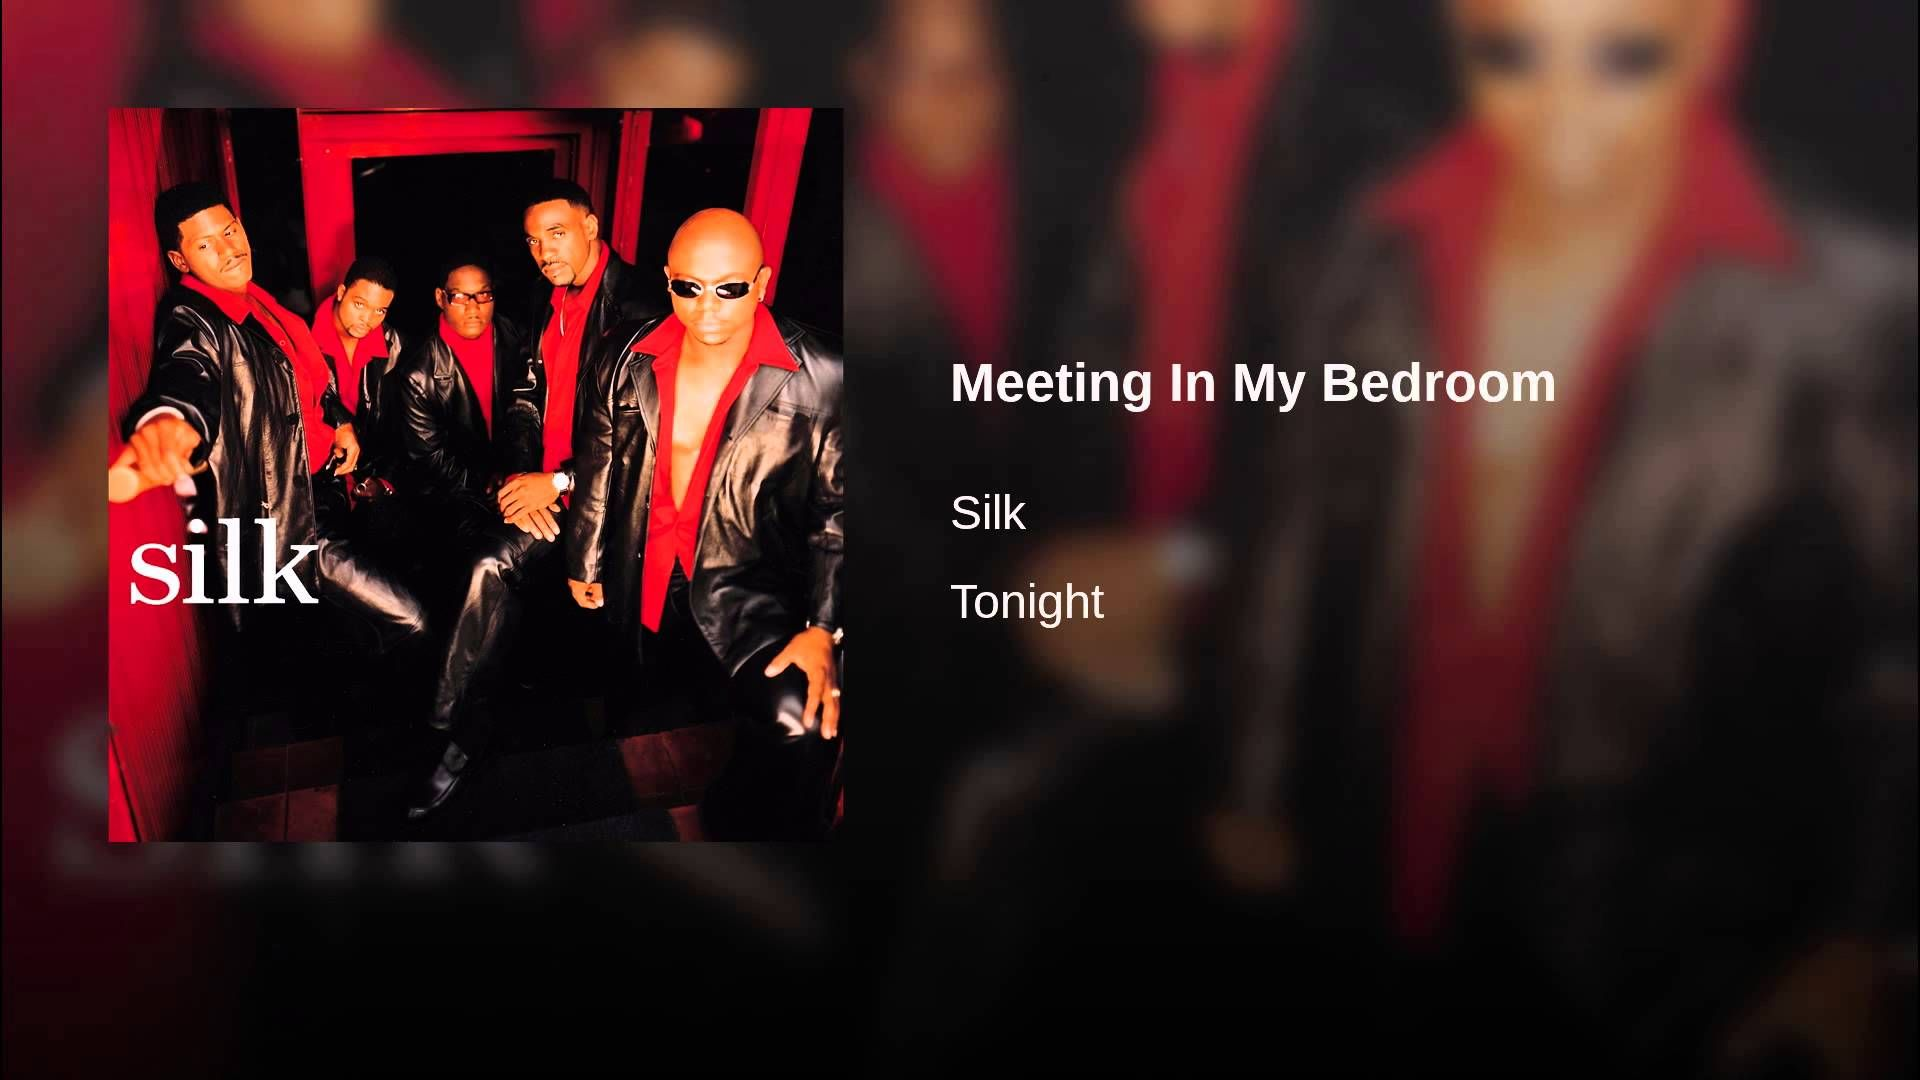 Meeting In My Bedroom Youtube Meeting In My Bedroom Lets Make Love Music Mix